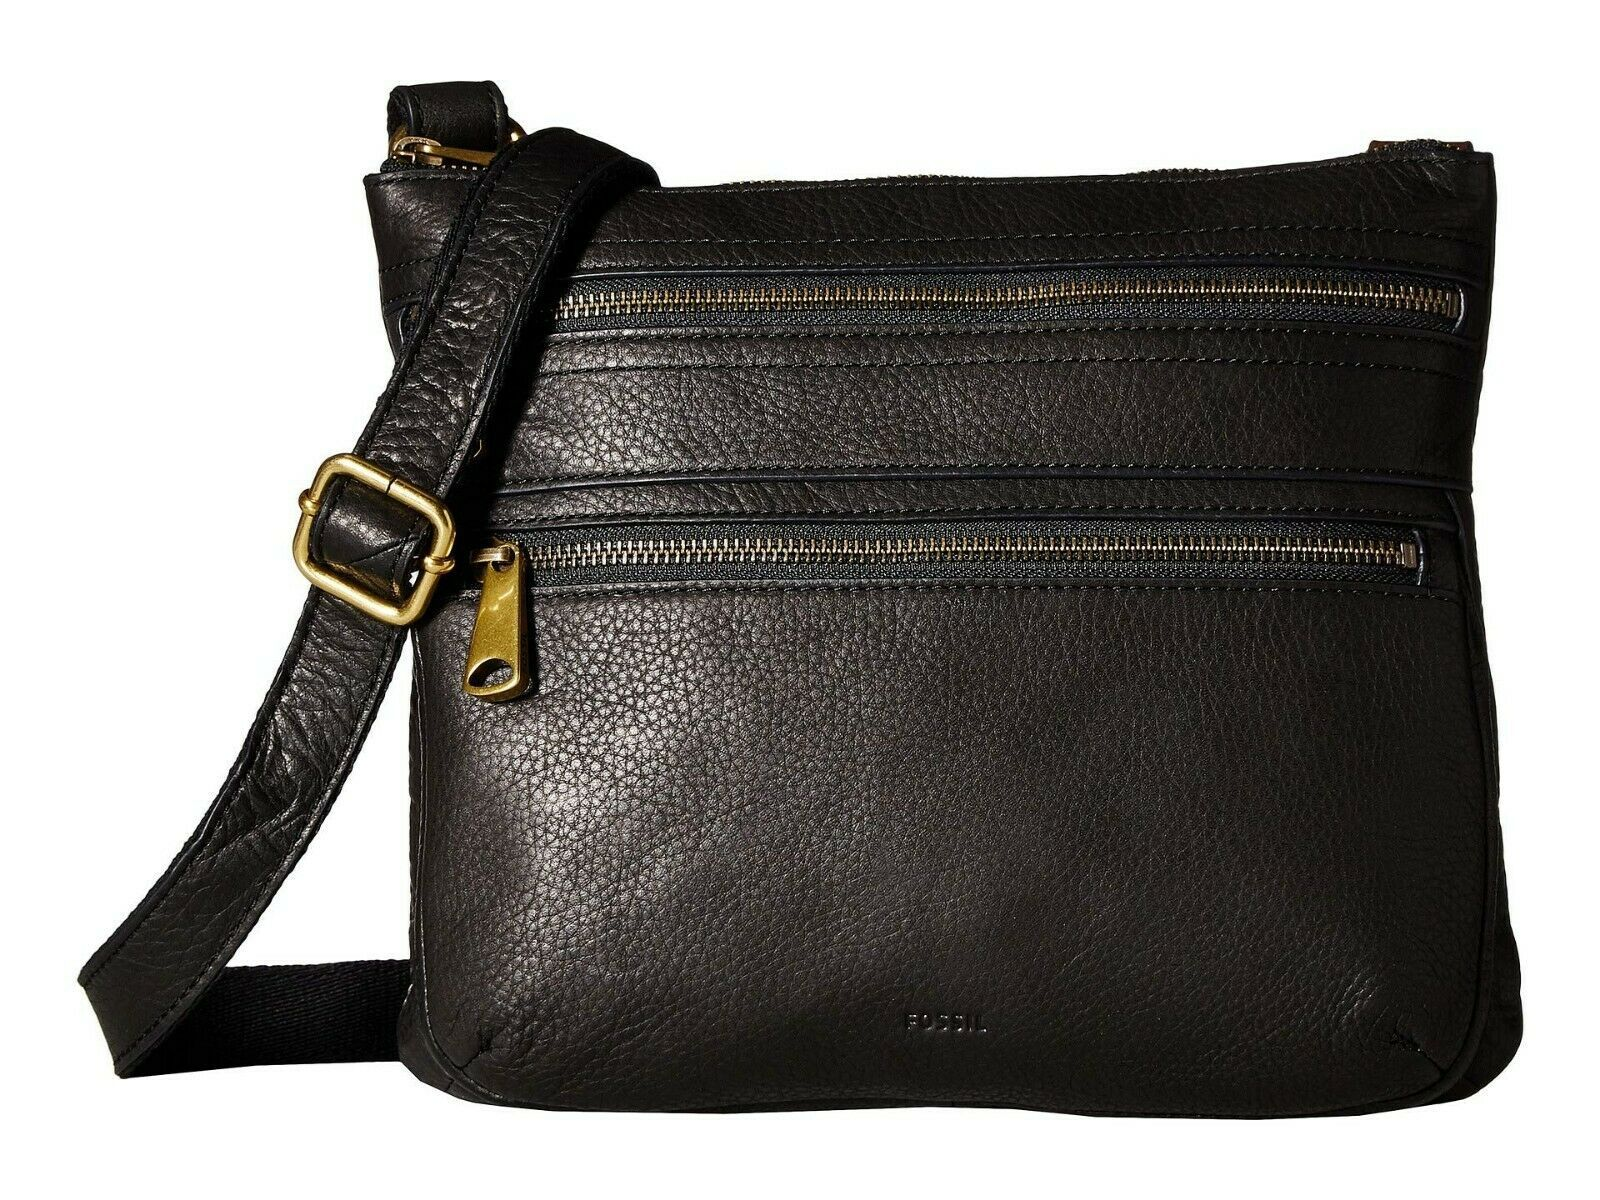 Primary image for New Fossil Women Explorer Crossbody Bag Variety Color